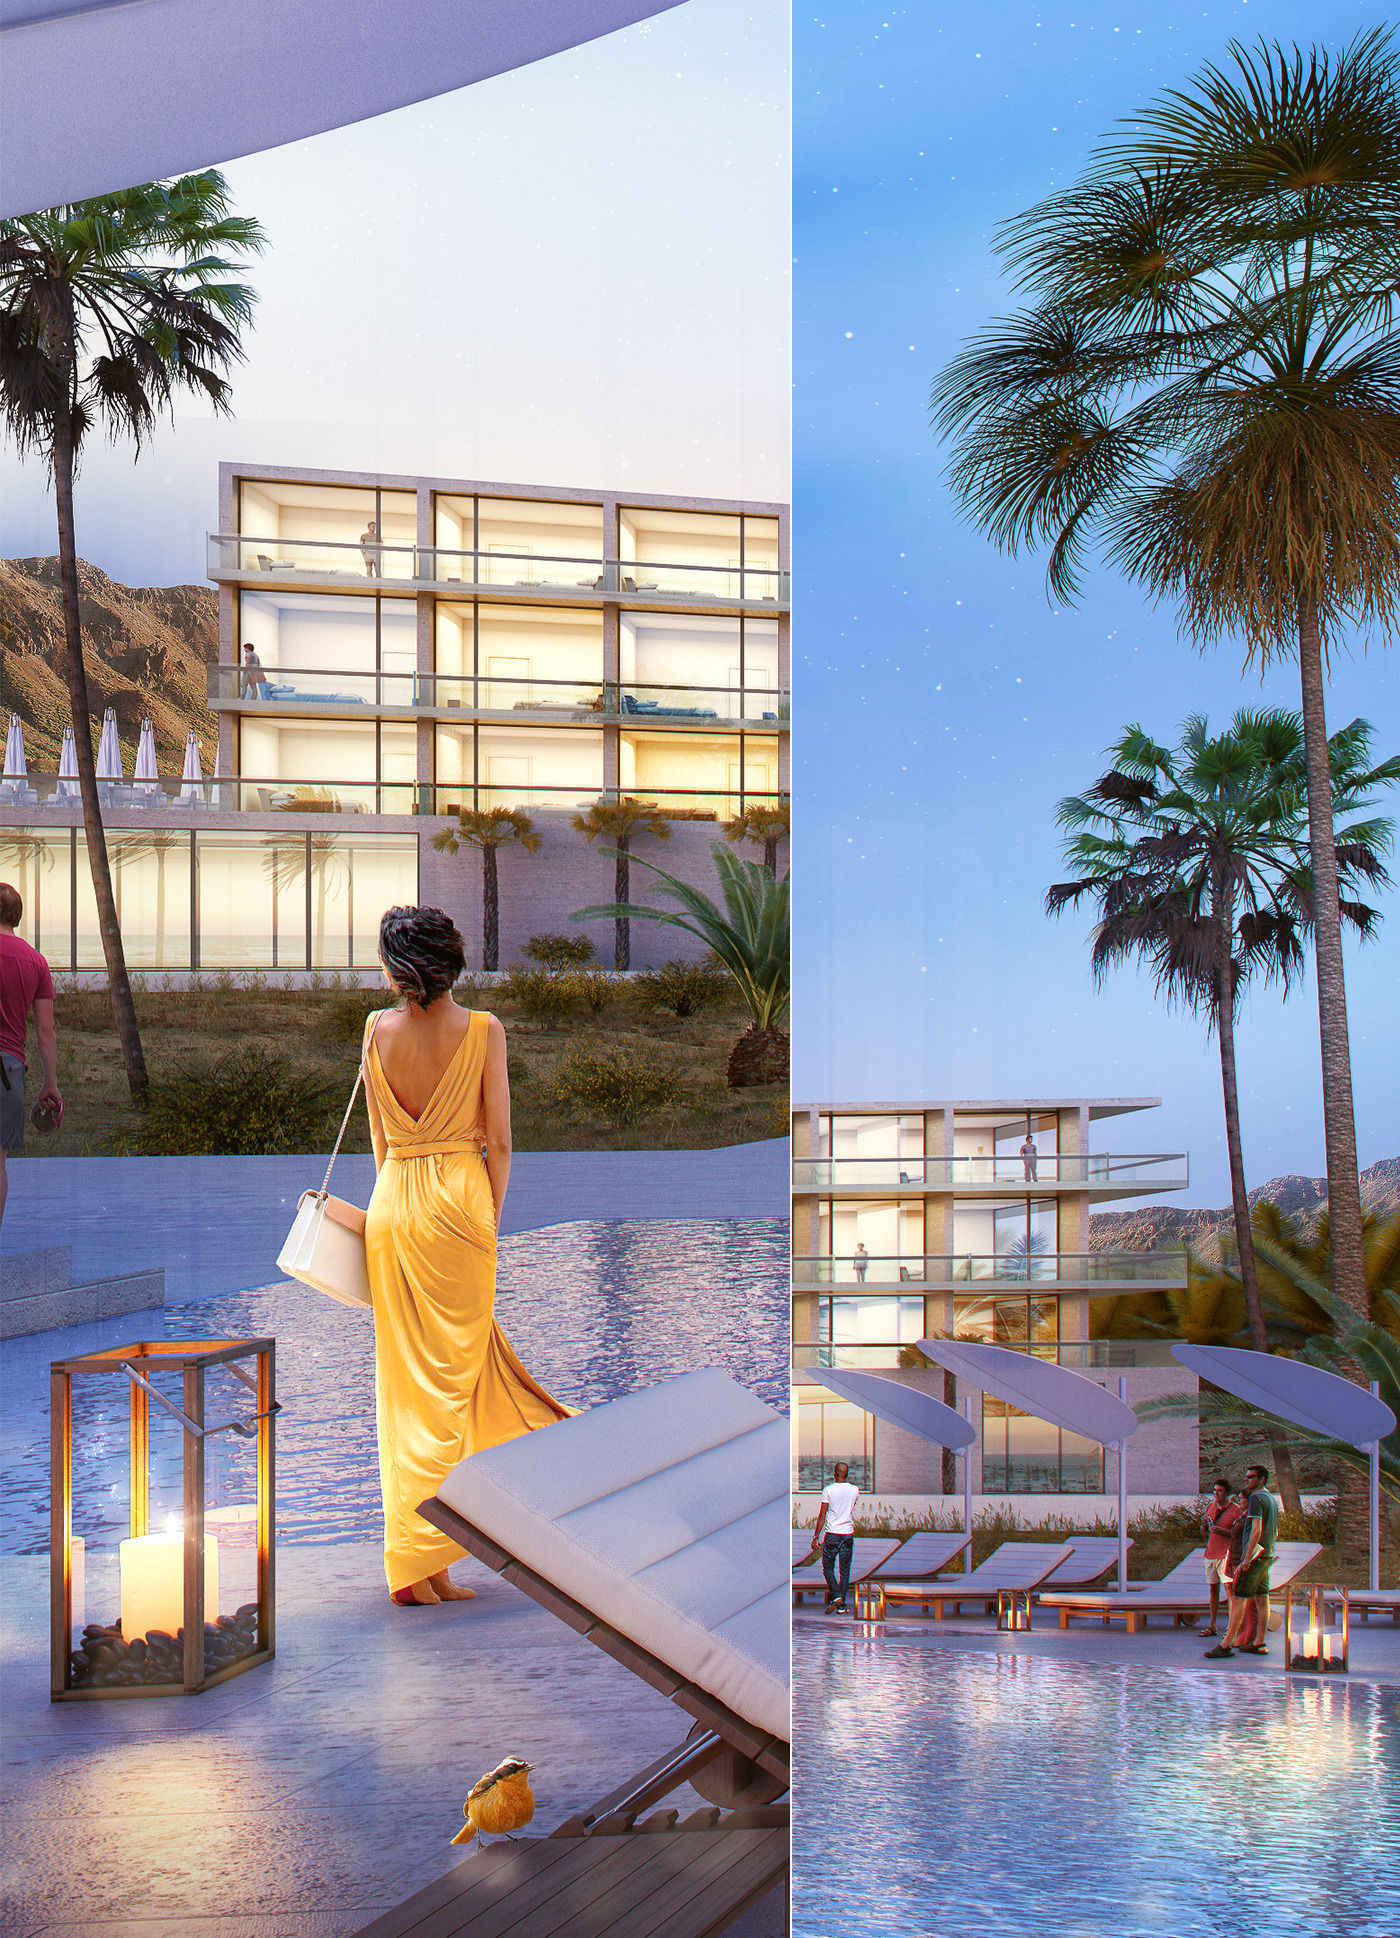 Taghazout hotel